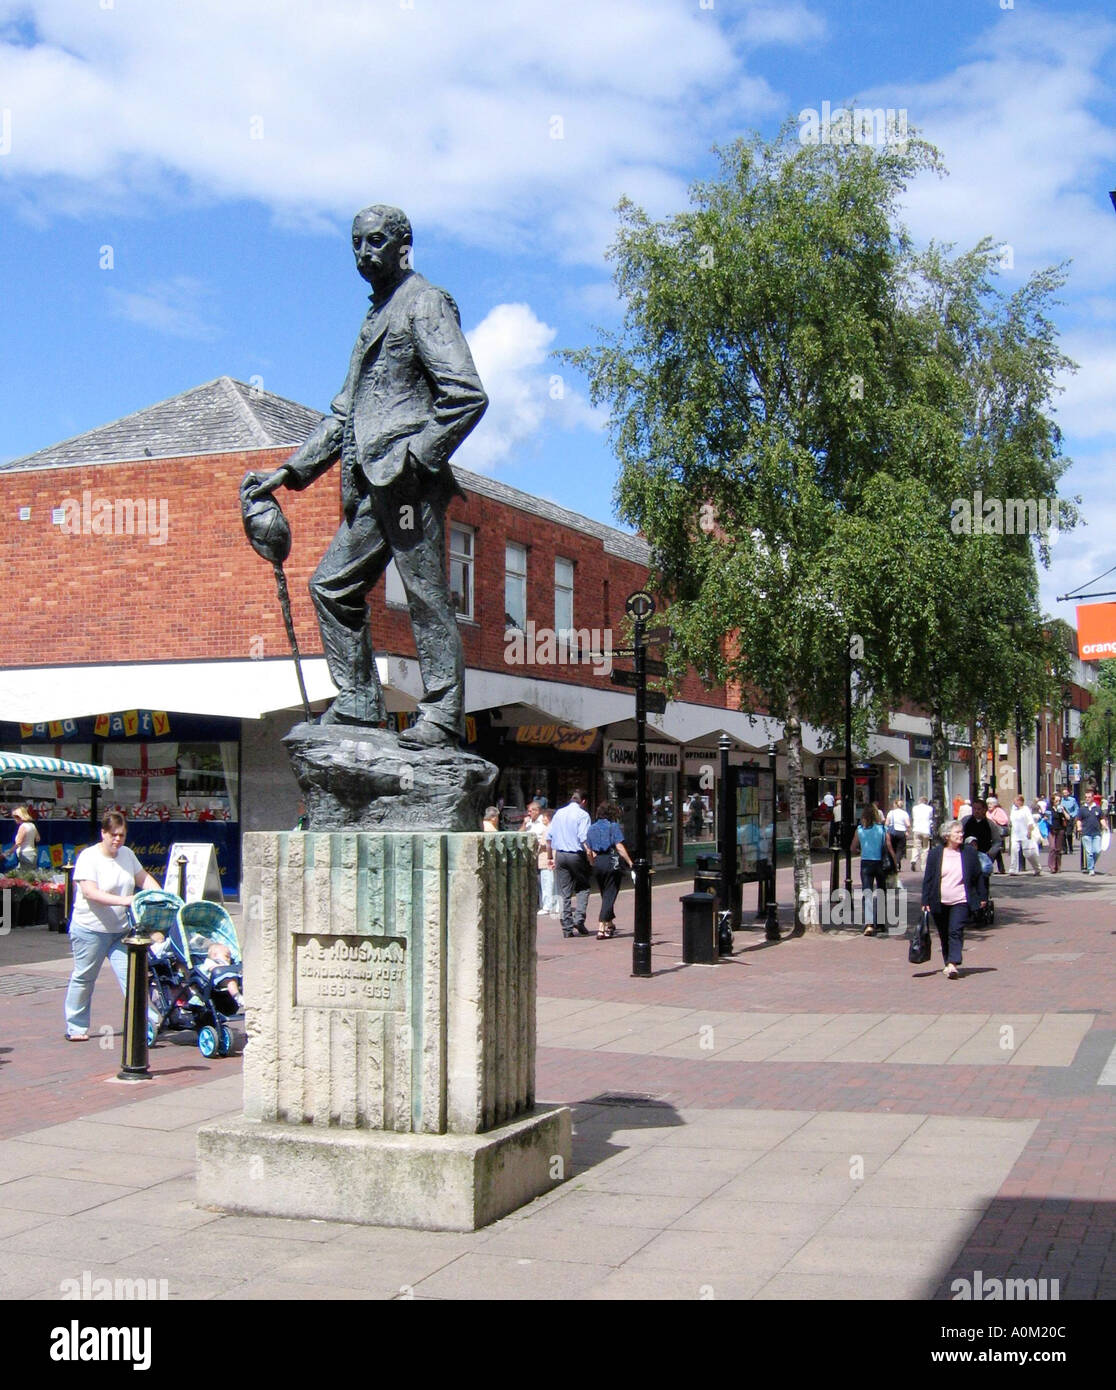 Statue of AE Housman in Bromsgrove High St, Worcestershire England - Stock Image